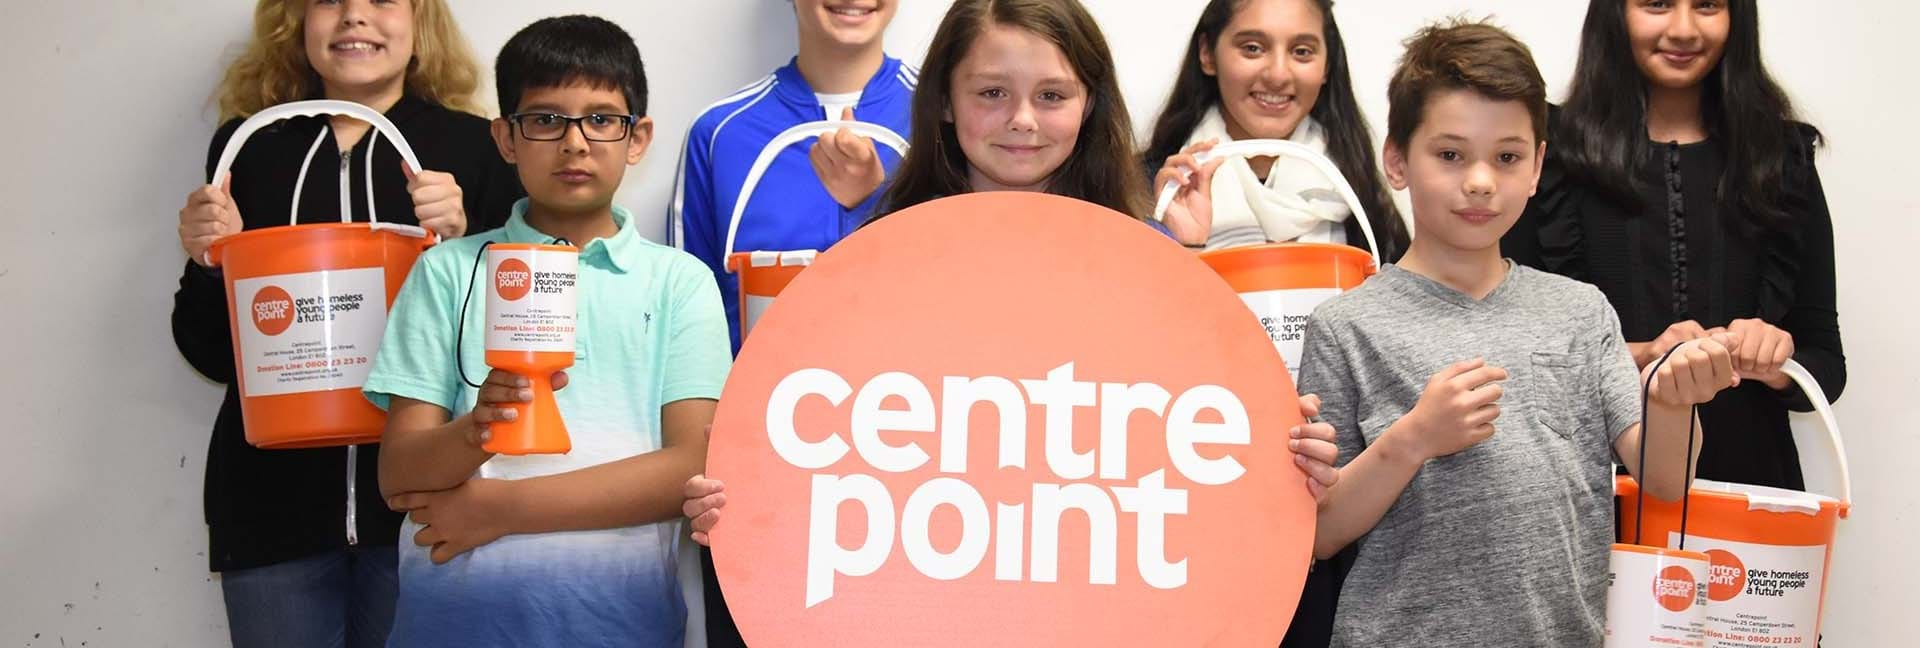 Schoolchildren hold up Centrepoint logos and buckets.